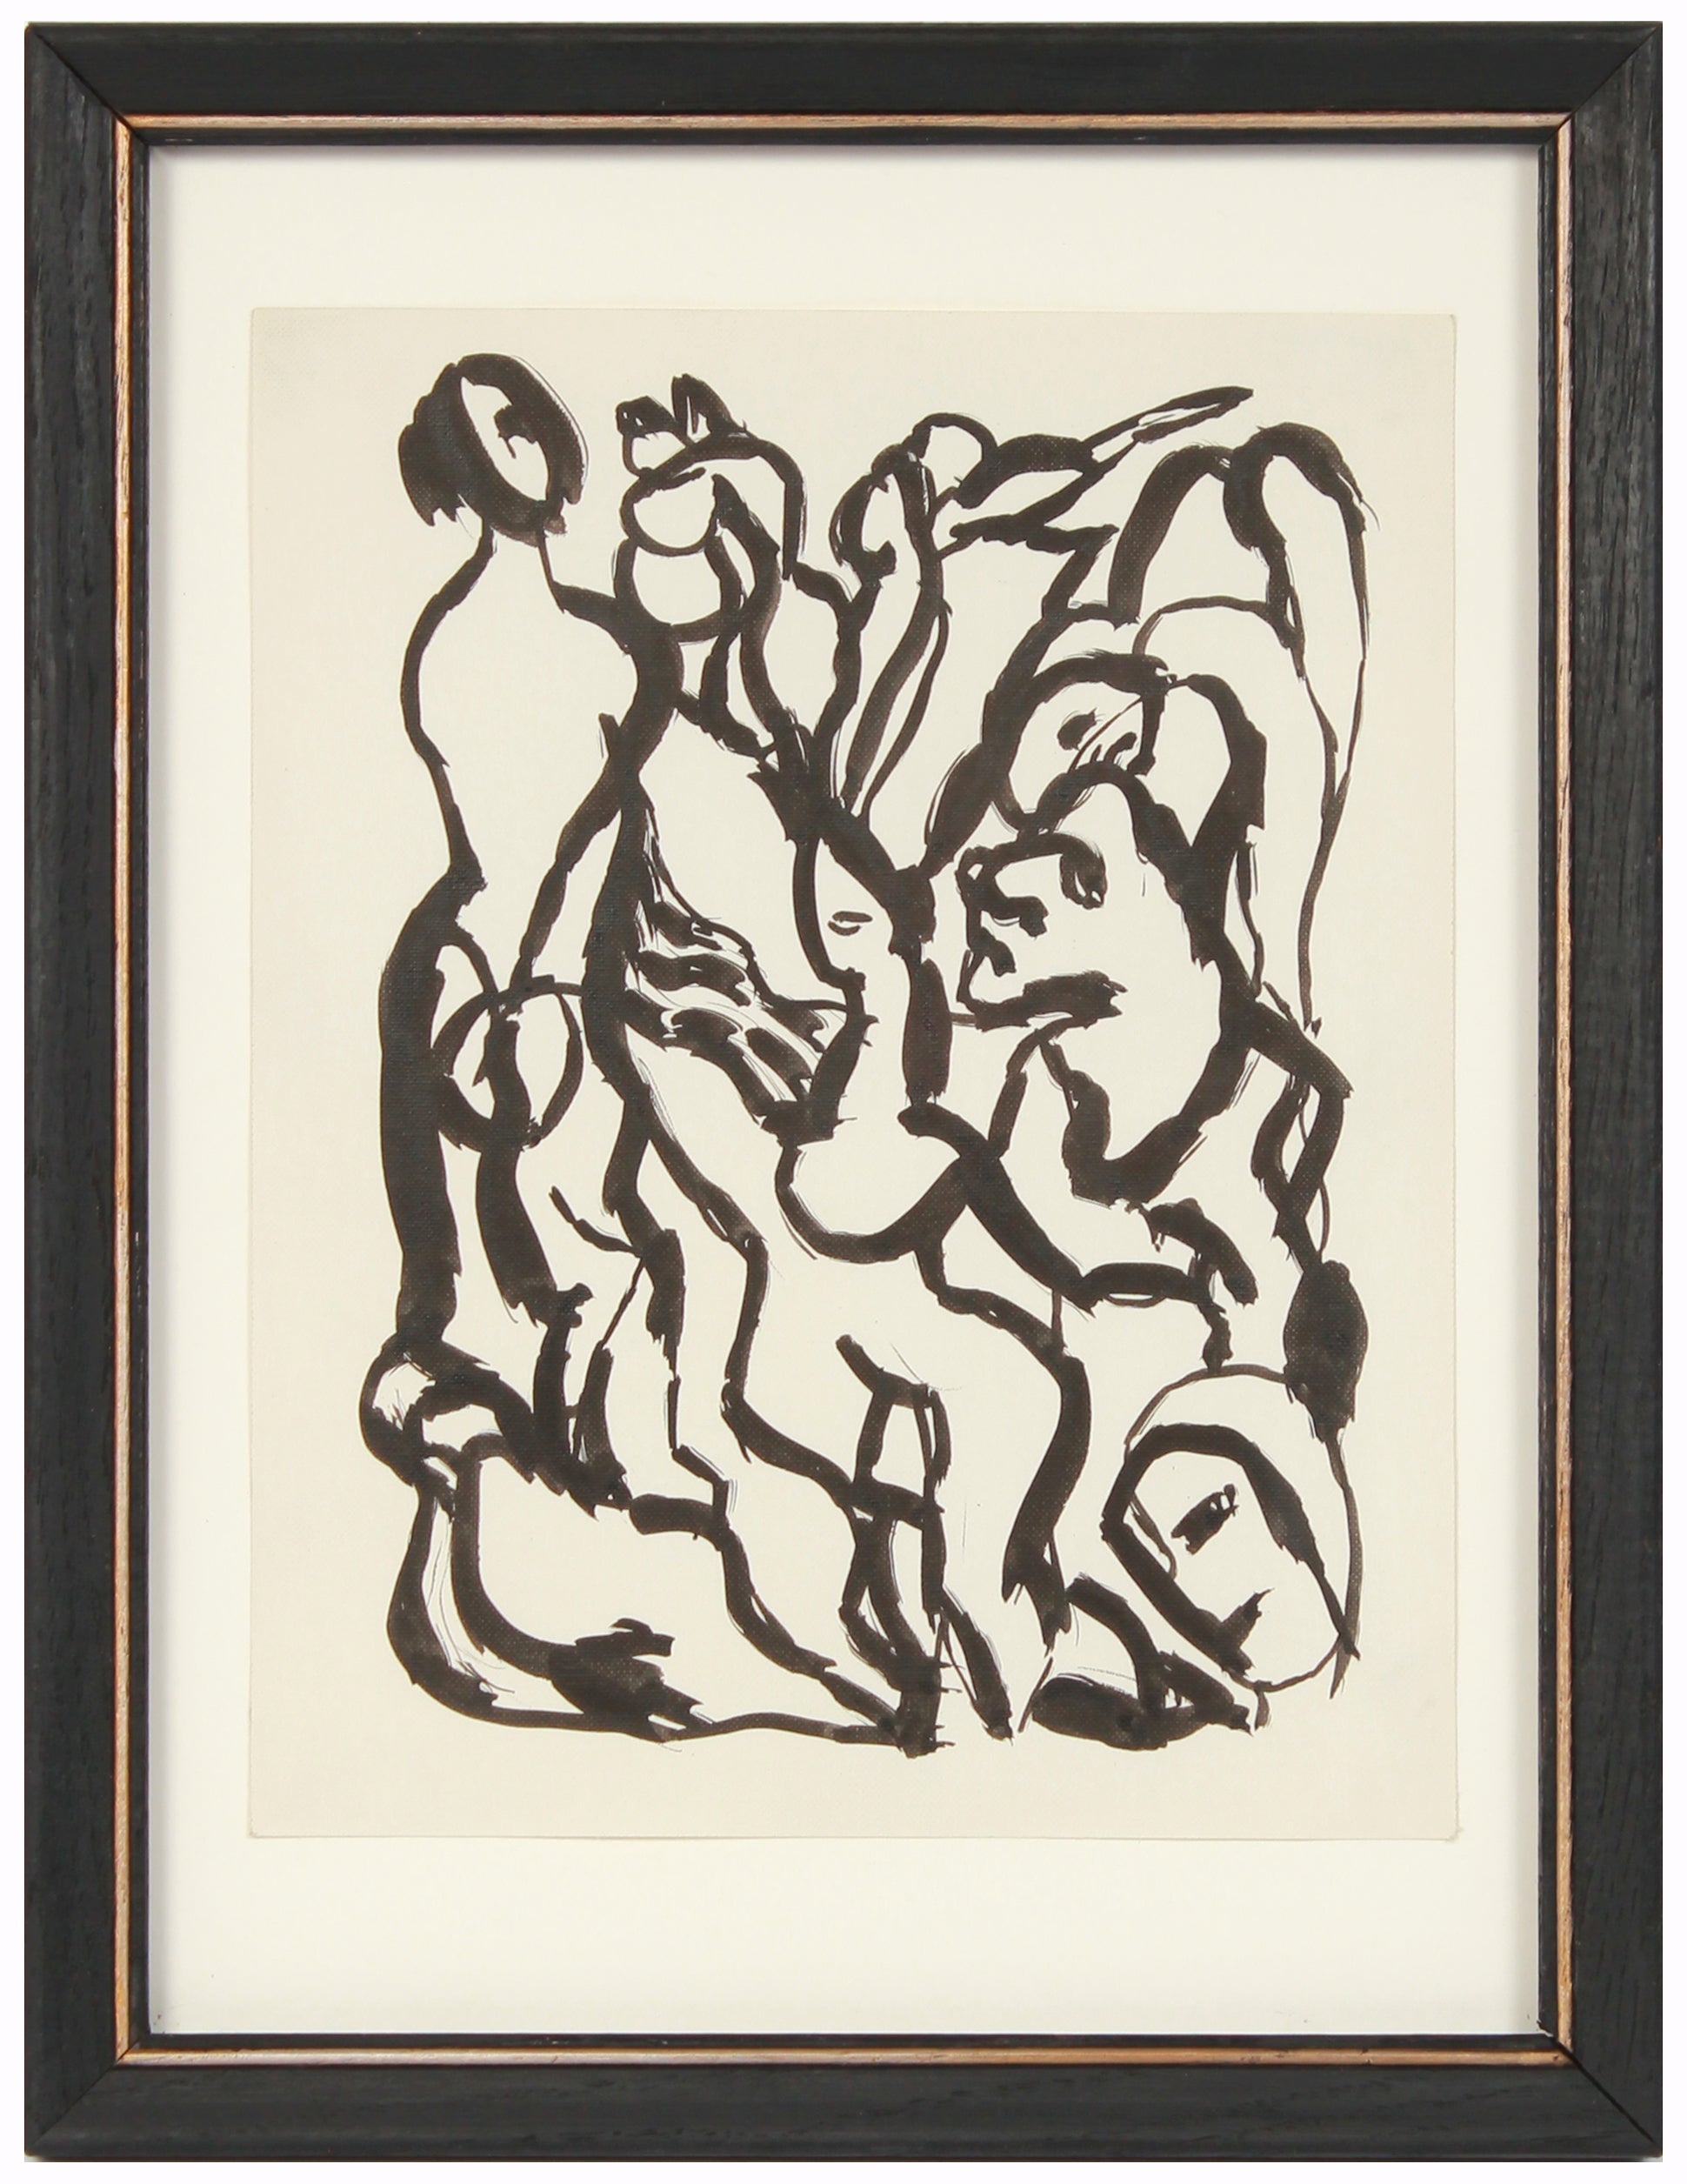 Bold Modernist Abstracted Figures <br>Early-Mid 20th Century Ink <br><br>#13522